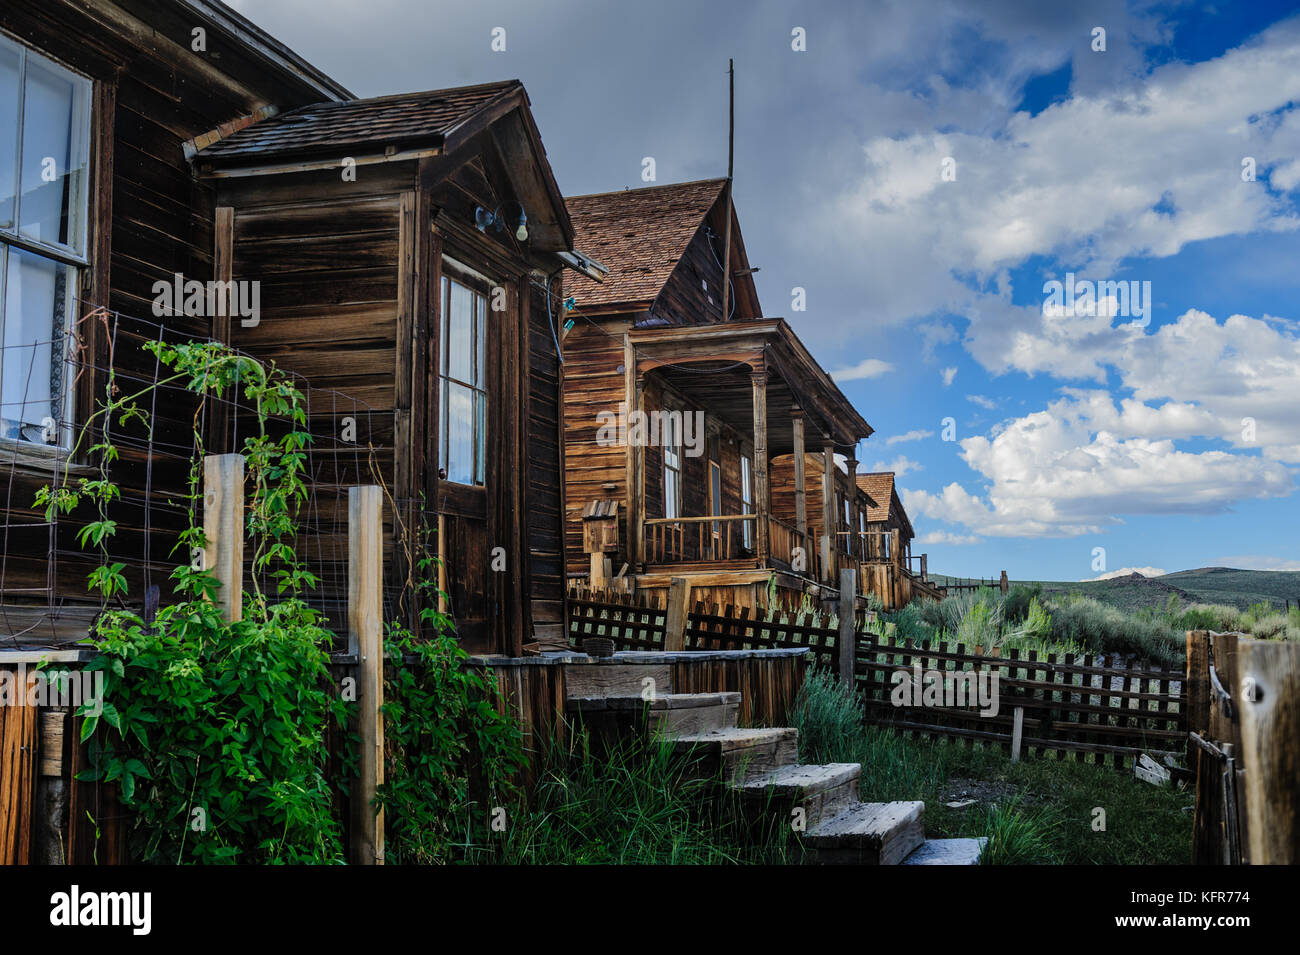 Ruined Houses in an American Ghost Town - Stock Image